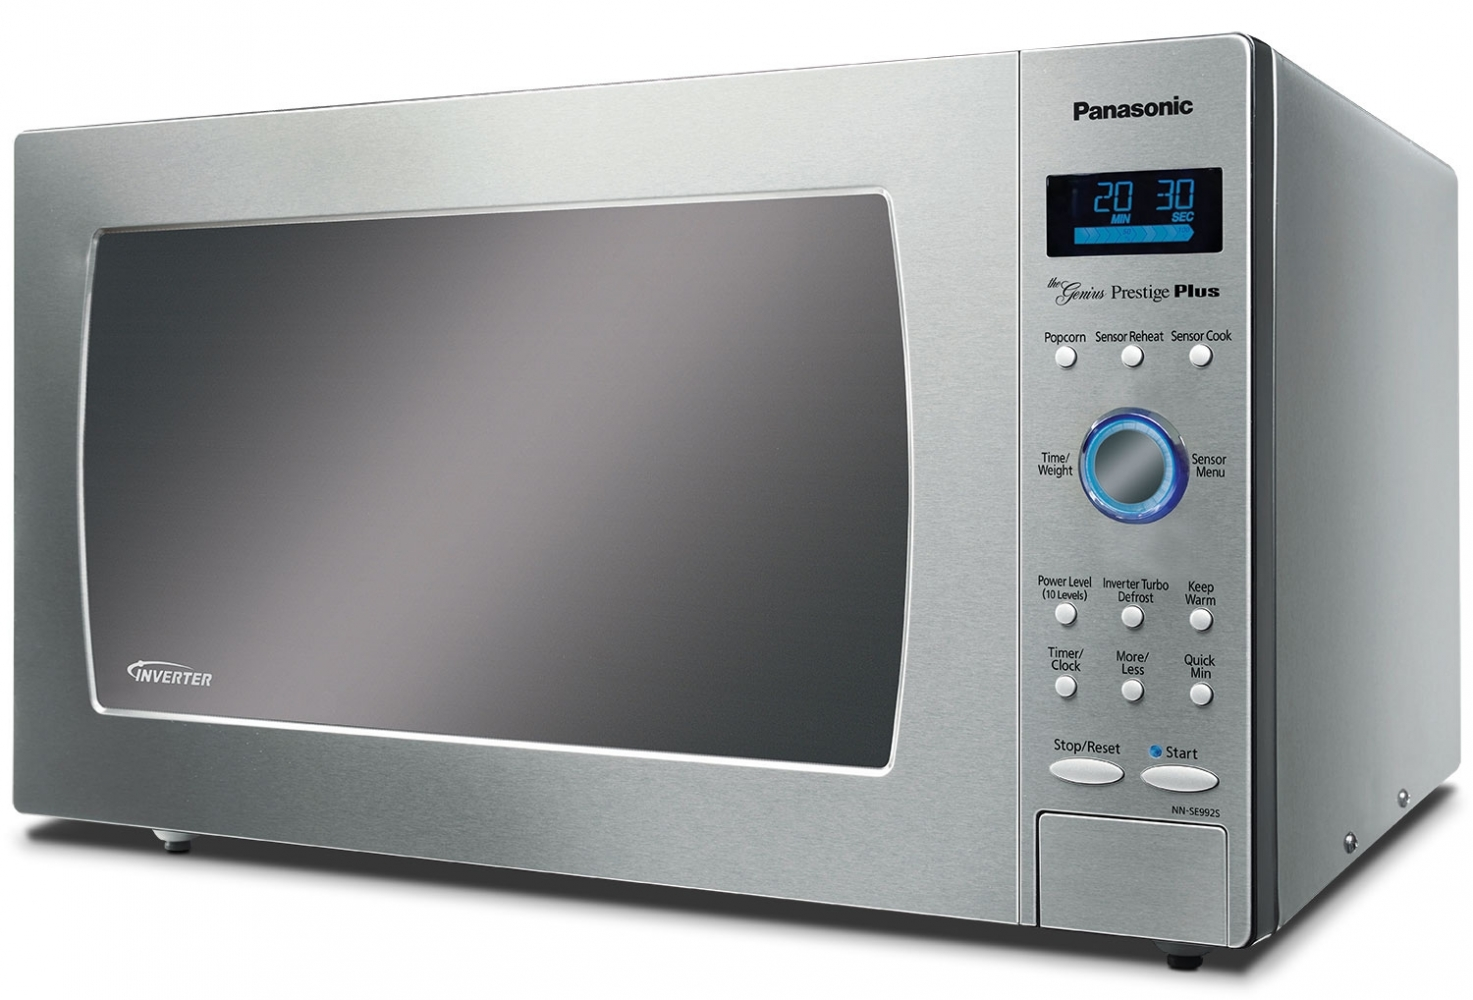 Microwave Repair And Maintenance Service Cost Help